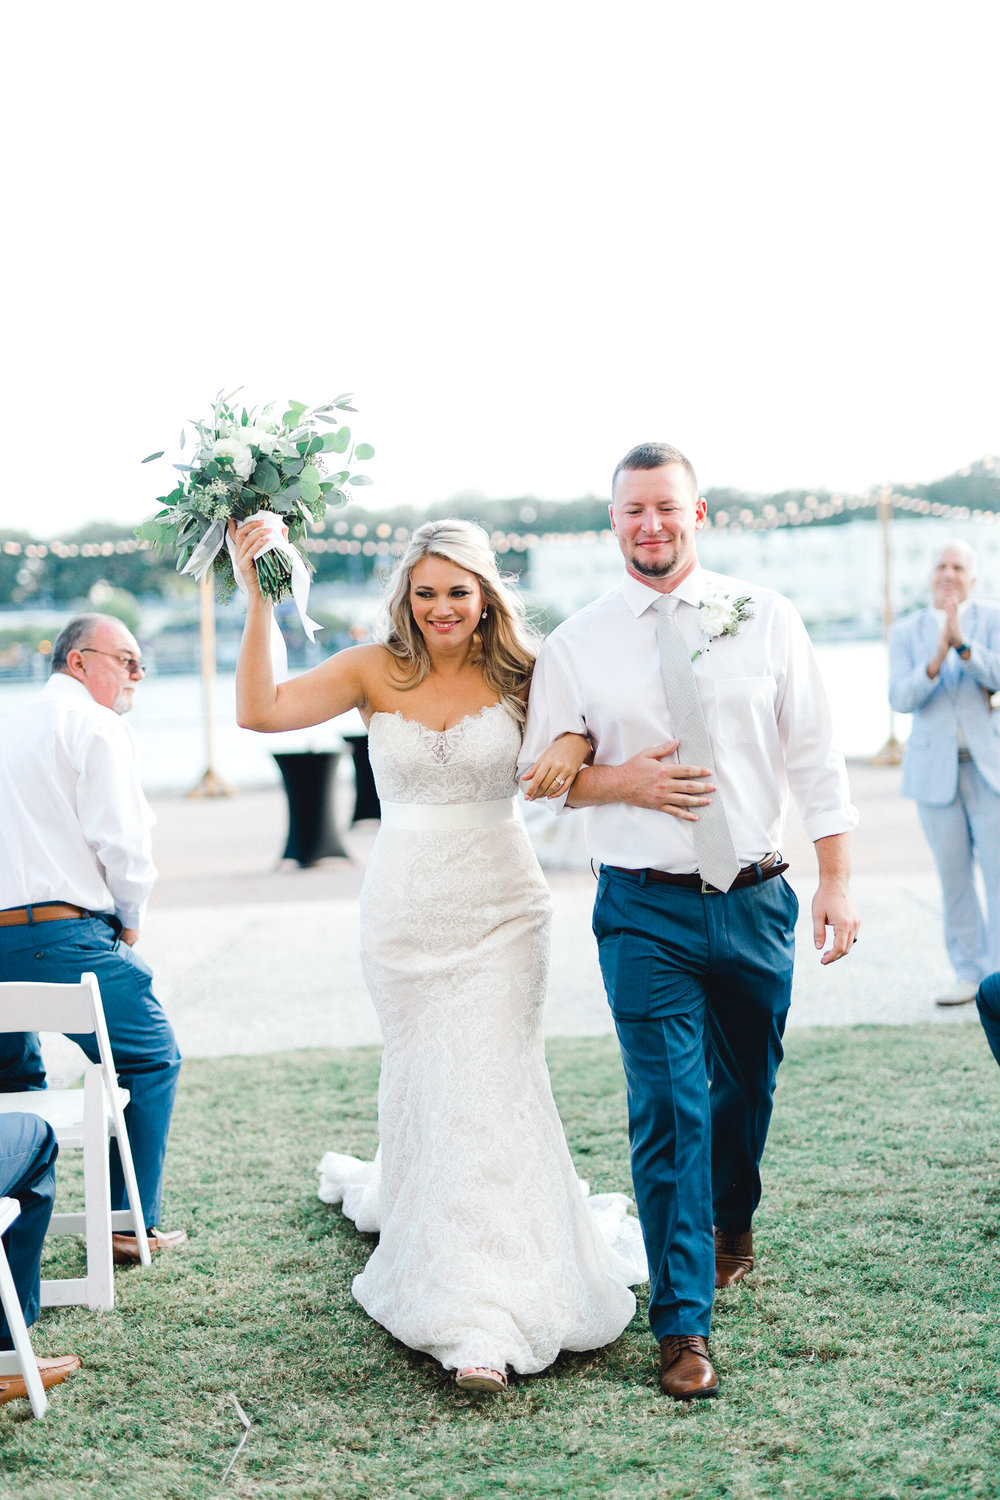 Westin Savannah Wedding by Danielle George Photography